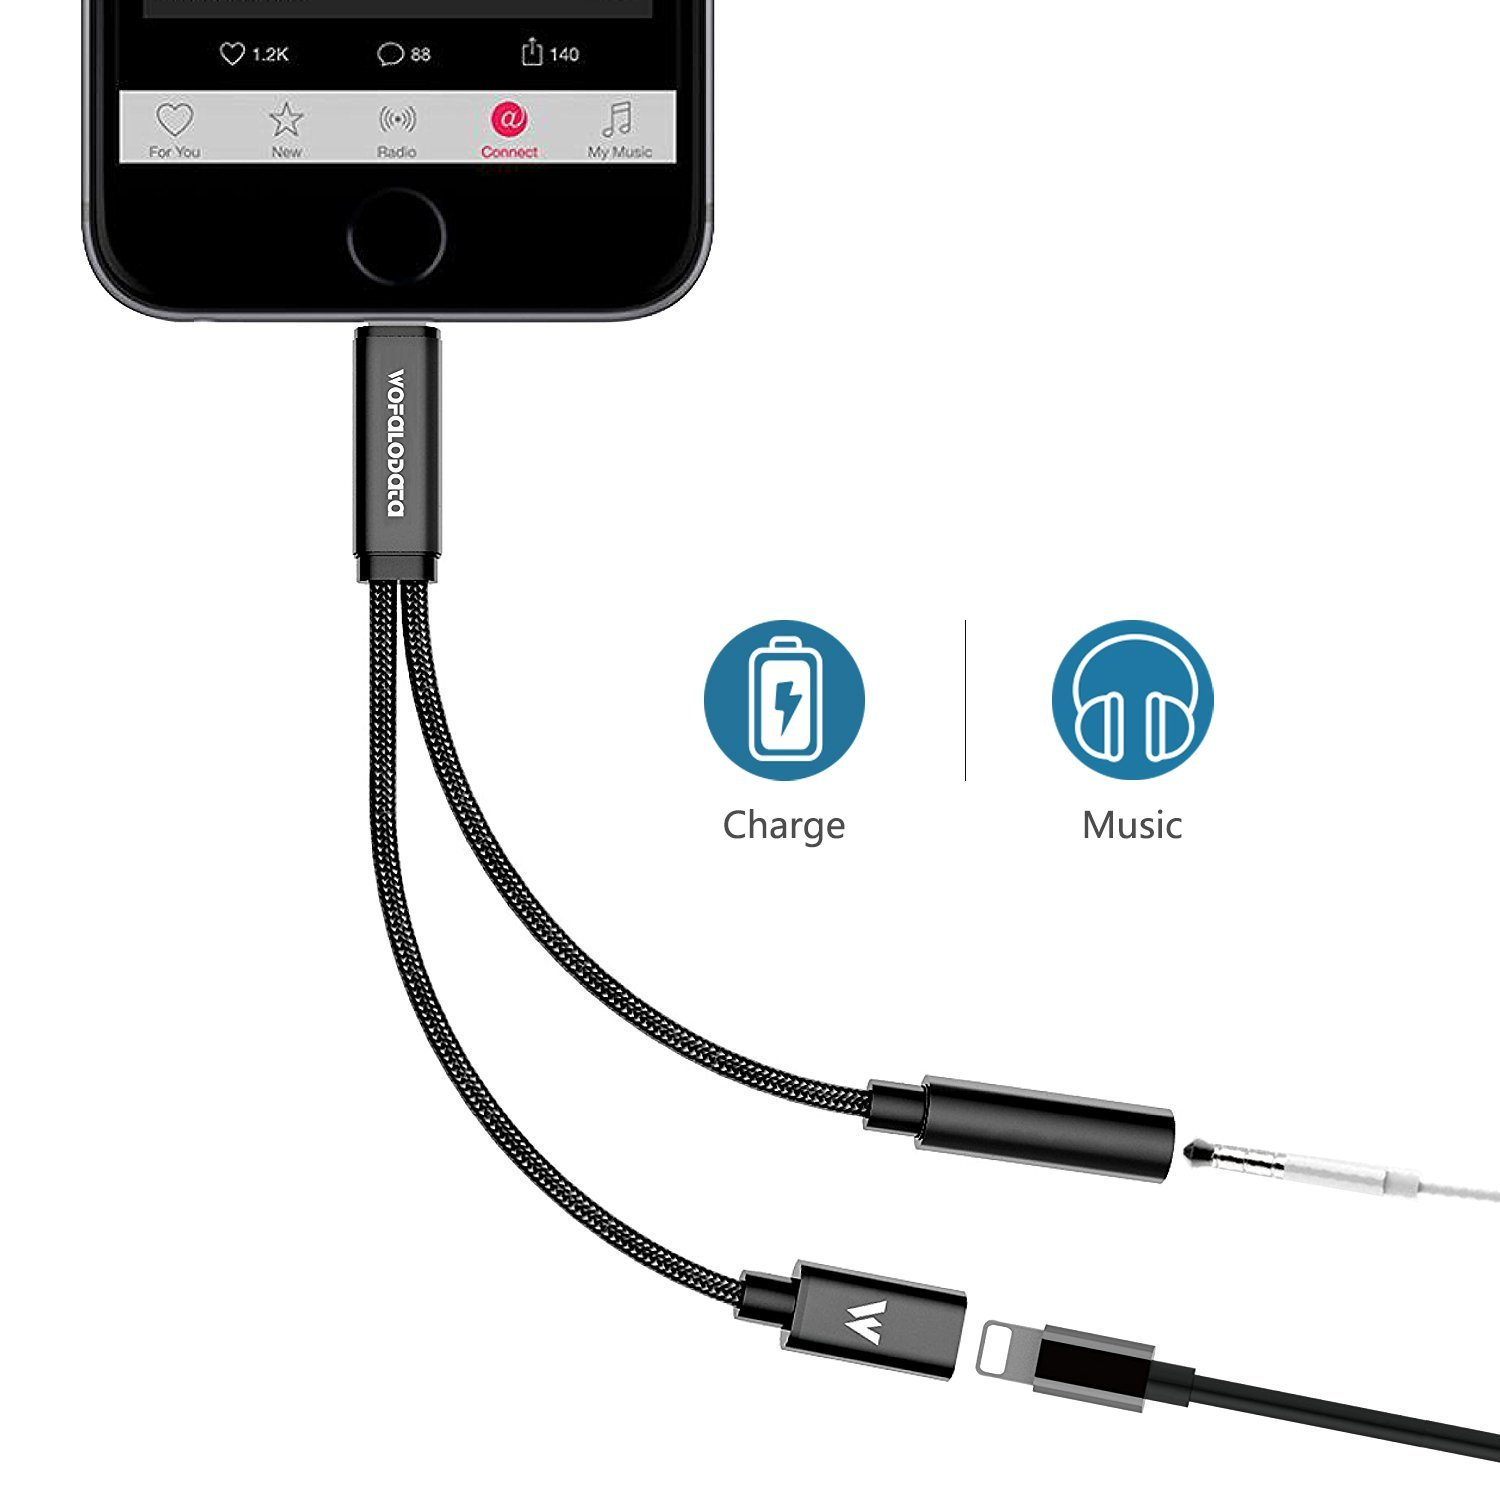 Wofalodata Lightning to 3.5mm Headphone Jack Audio Adapter for iPhone 8/8 Plus, Aux 3.5mm Audio and 2A Quick Charge Cable Adapter  for iPhone X (Black)